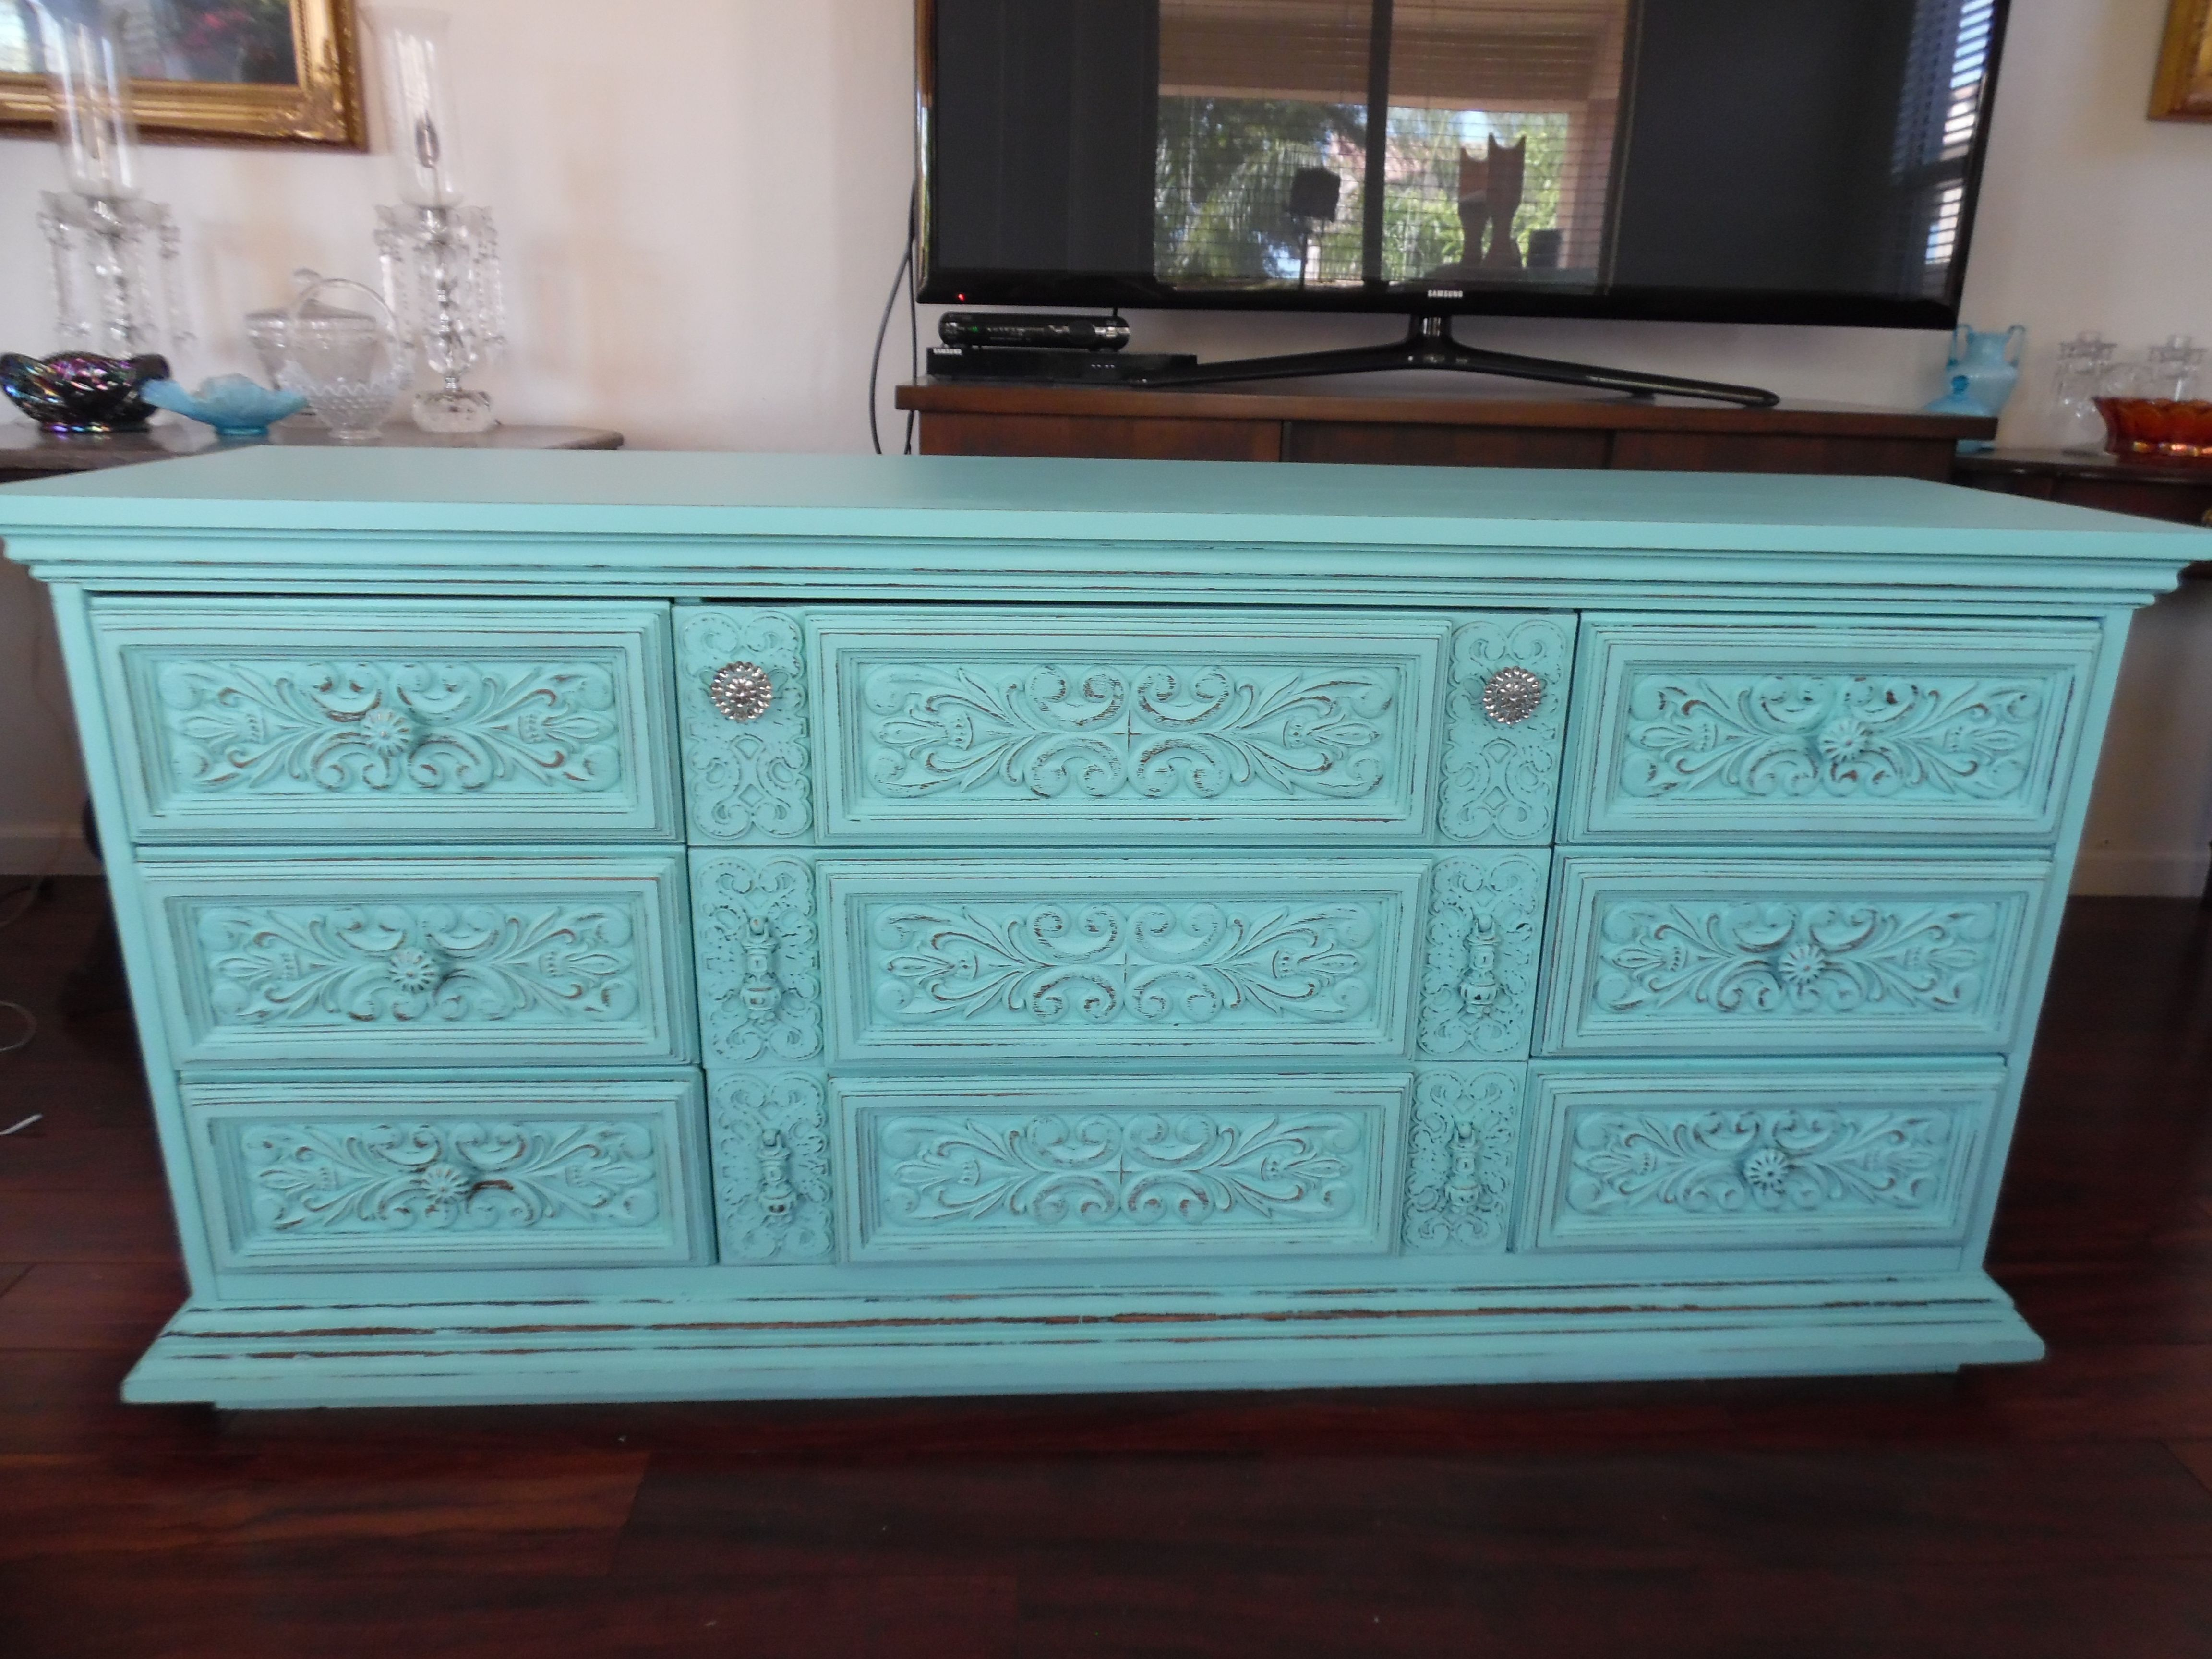 Uncategorized Turquoise Shabby Chic Furniture this beautiful nine drawer dresser has been painted turquoise and distressed sold by east valley dressersshabby chicdrawerturqu